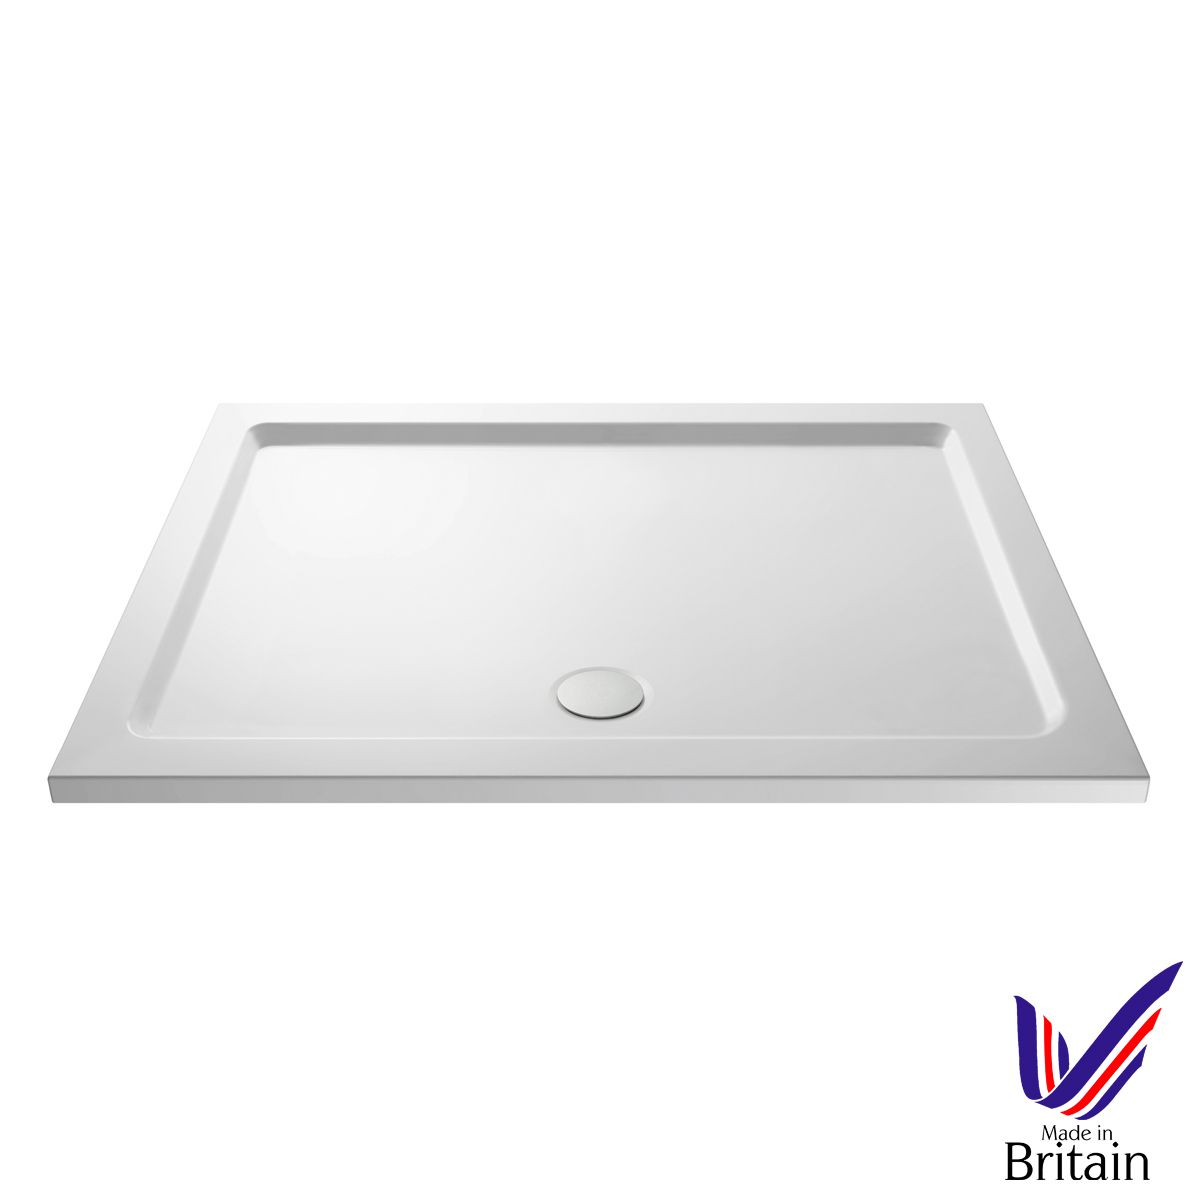 1800 x 800 Shower Tray Rectangular Low Profile by Pearlstone